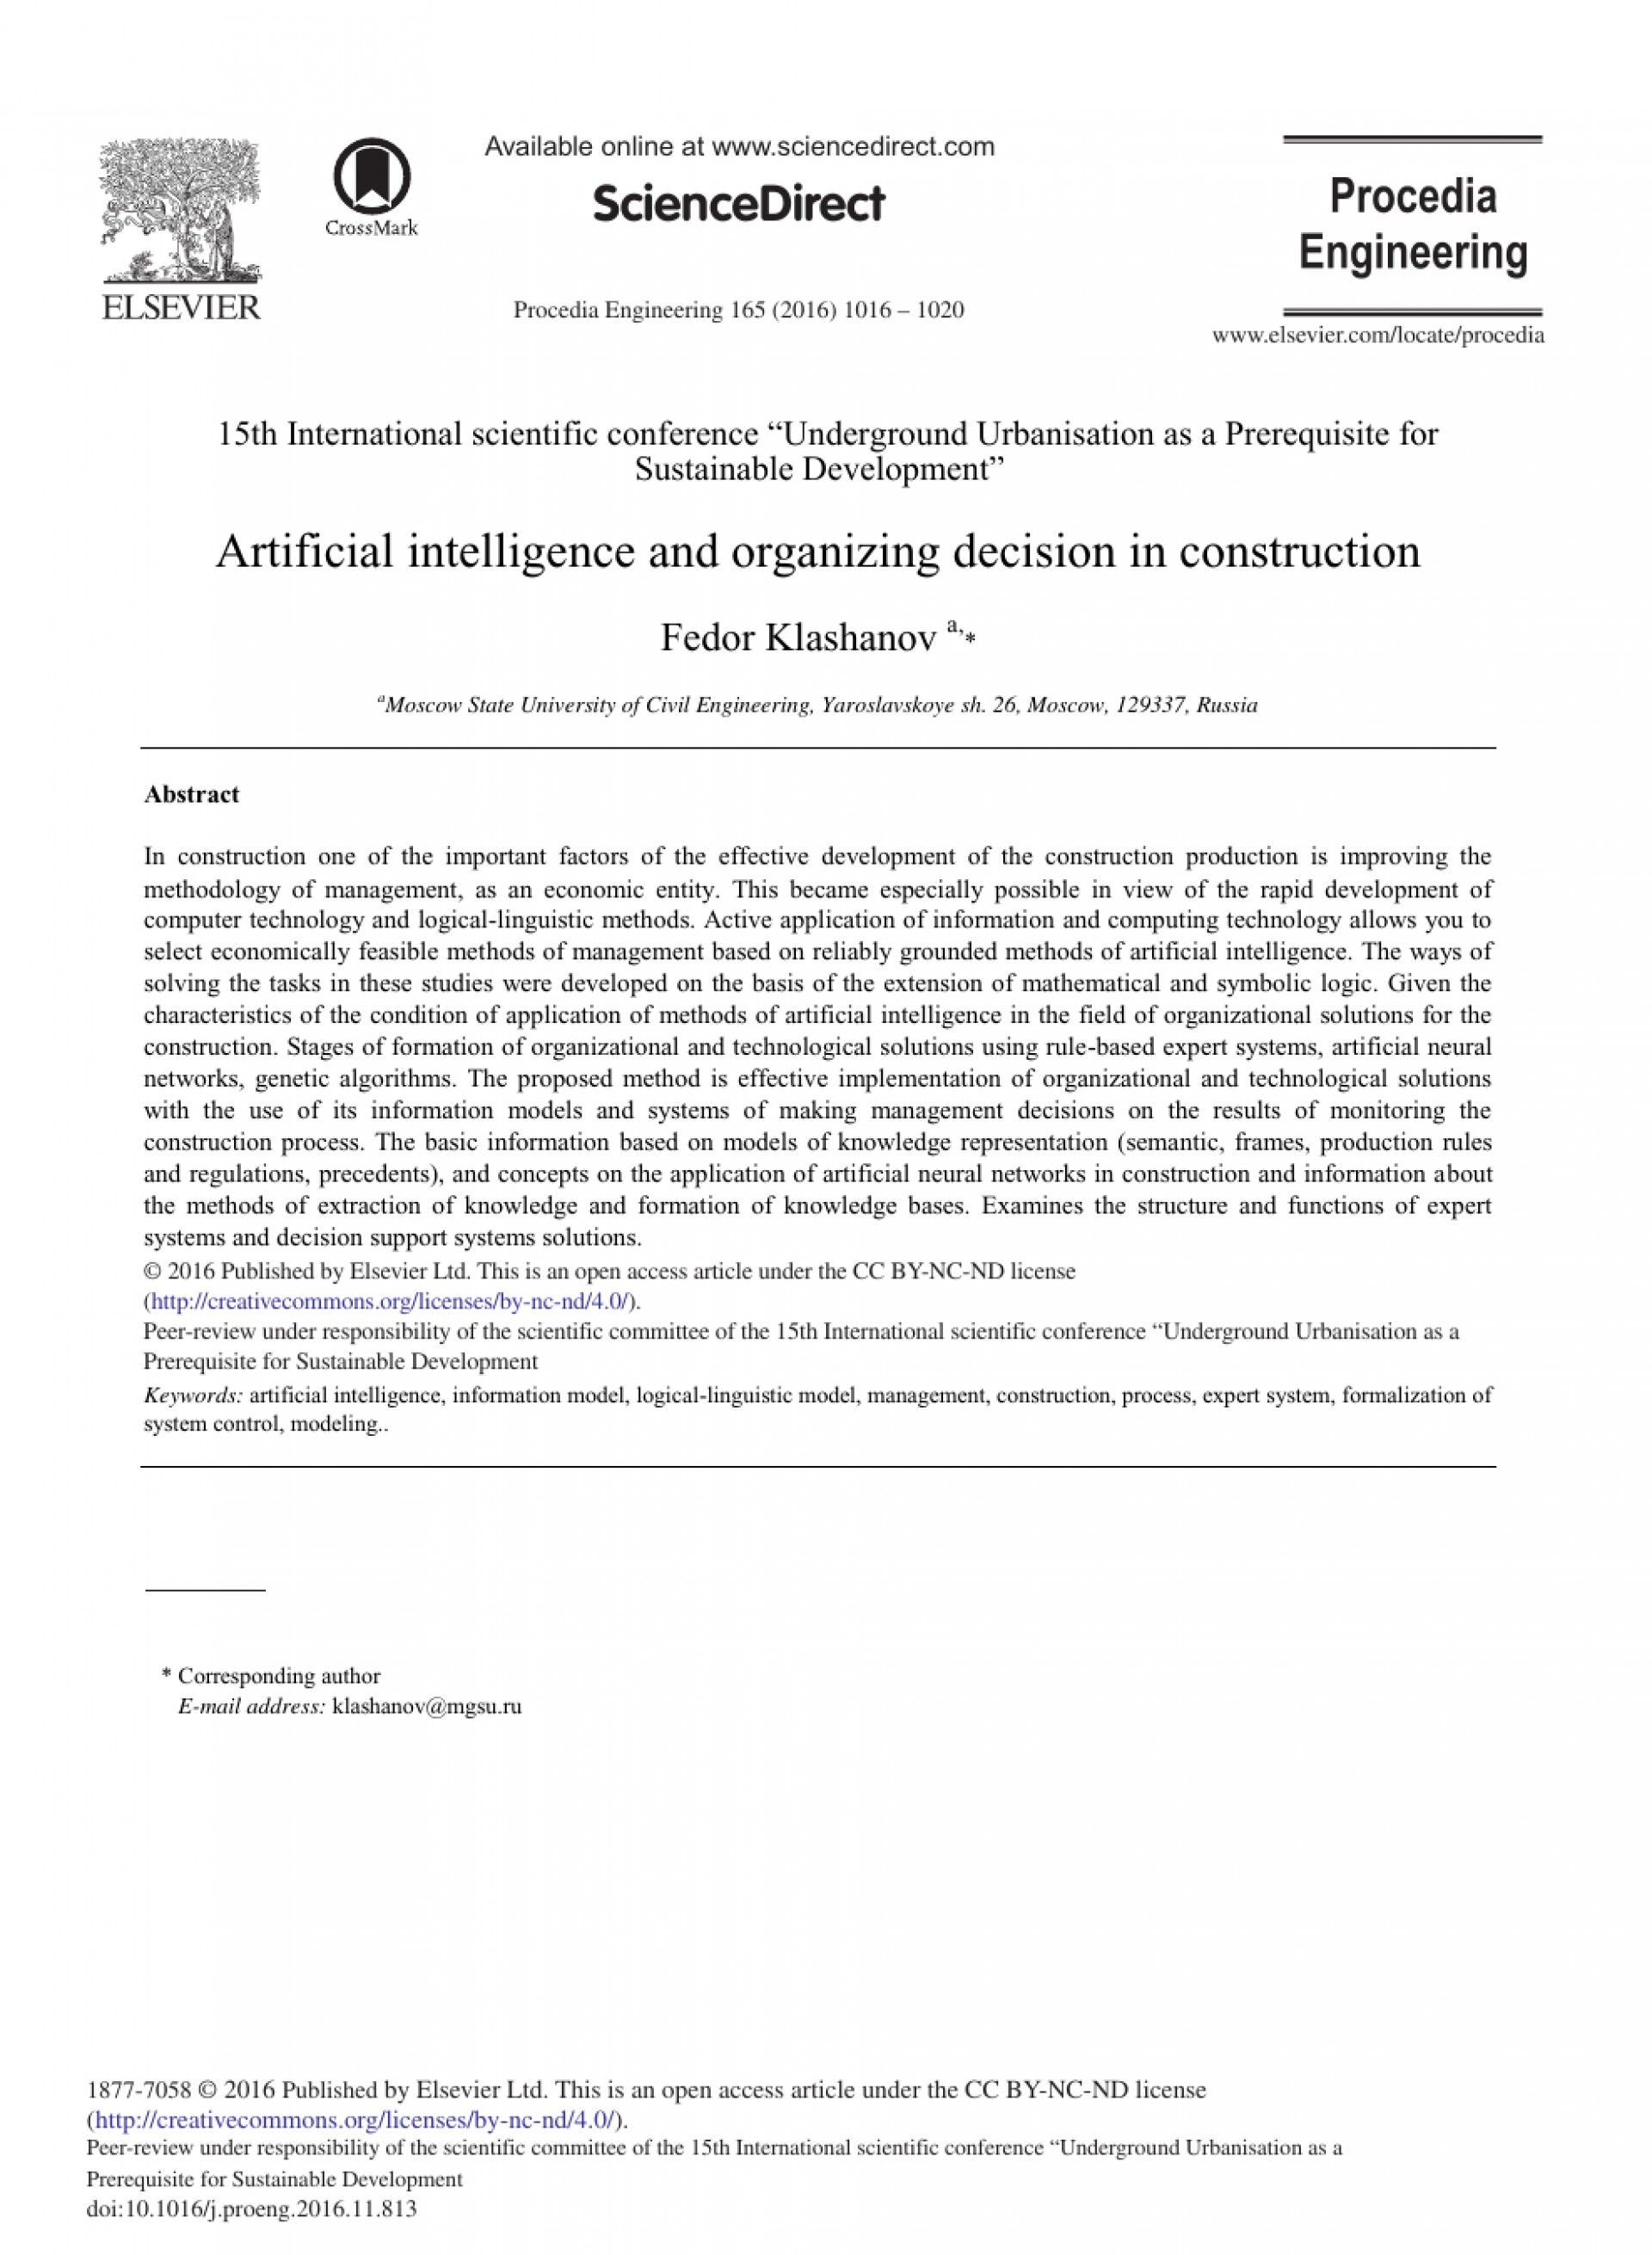 004 Artificial Intelligence Researchs Singular Research Papers 2016 1920